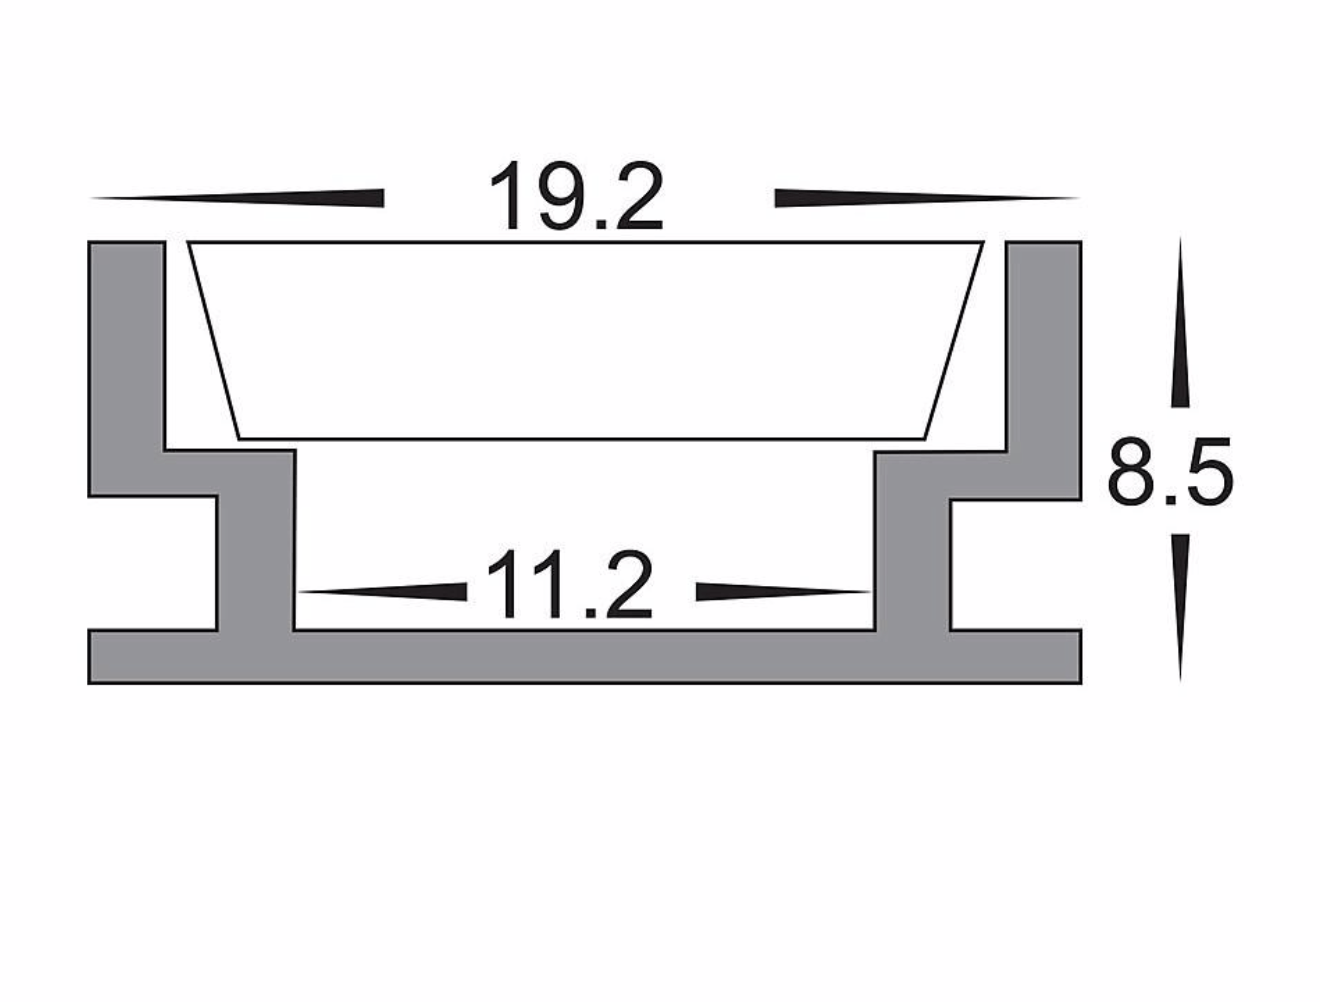 Profiles Recessed Profile - Foot Trafficable Shallow - HV9698-1908